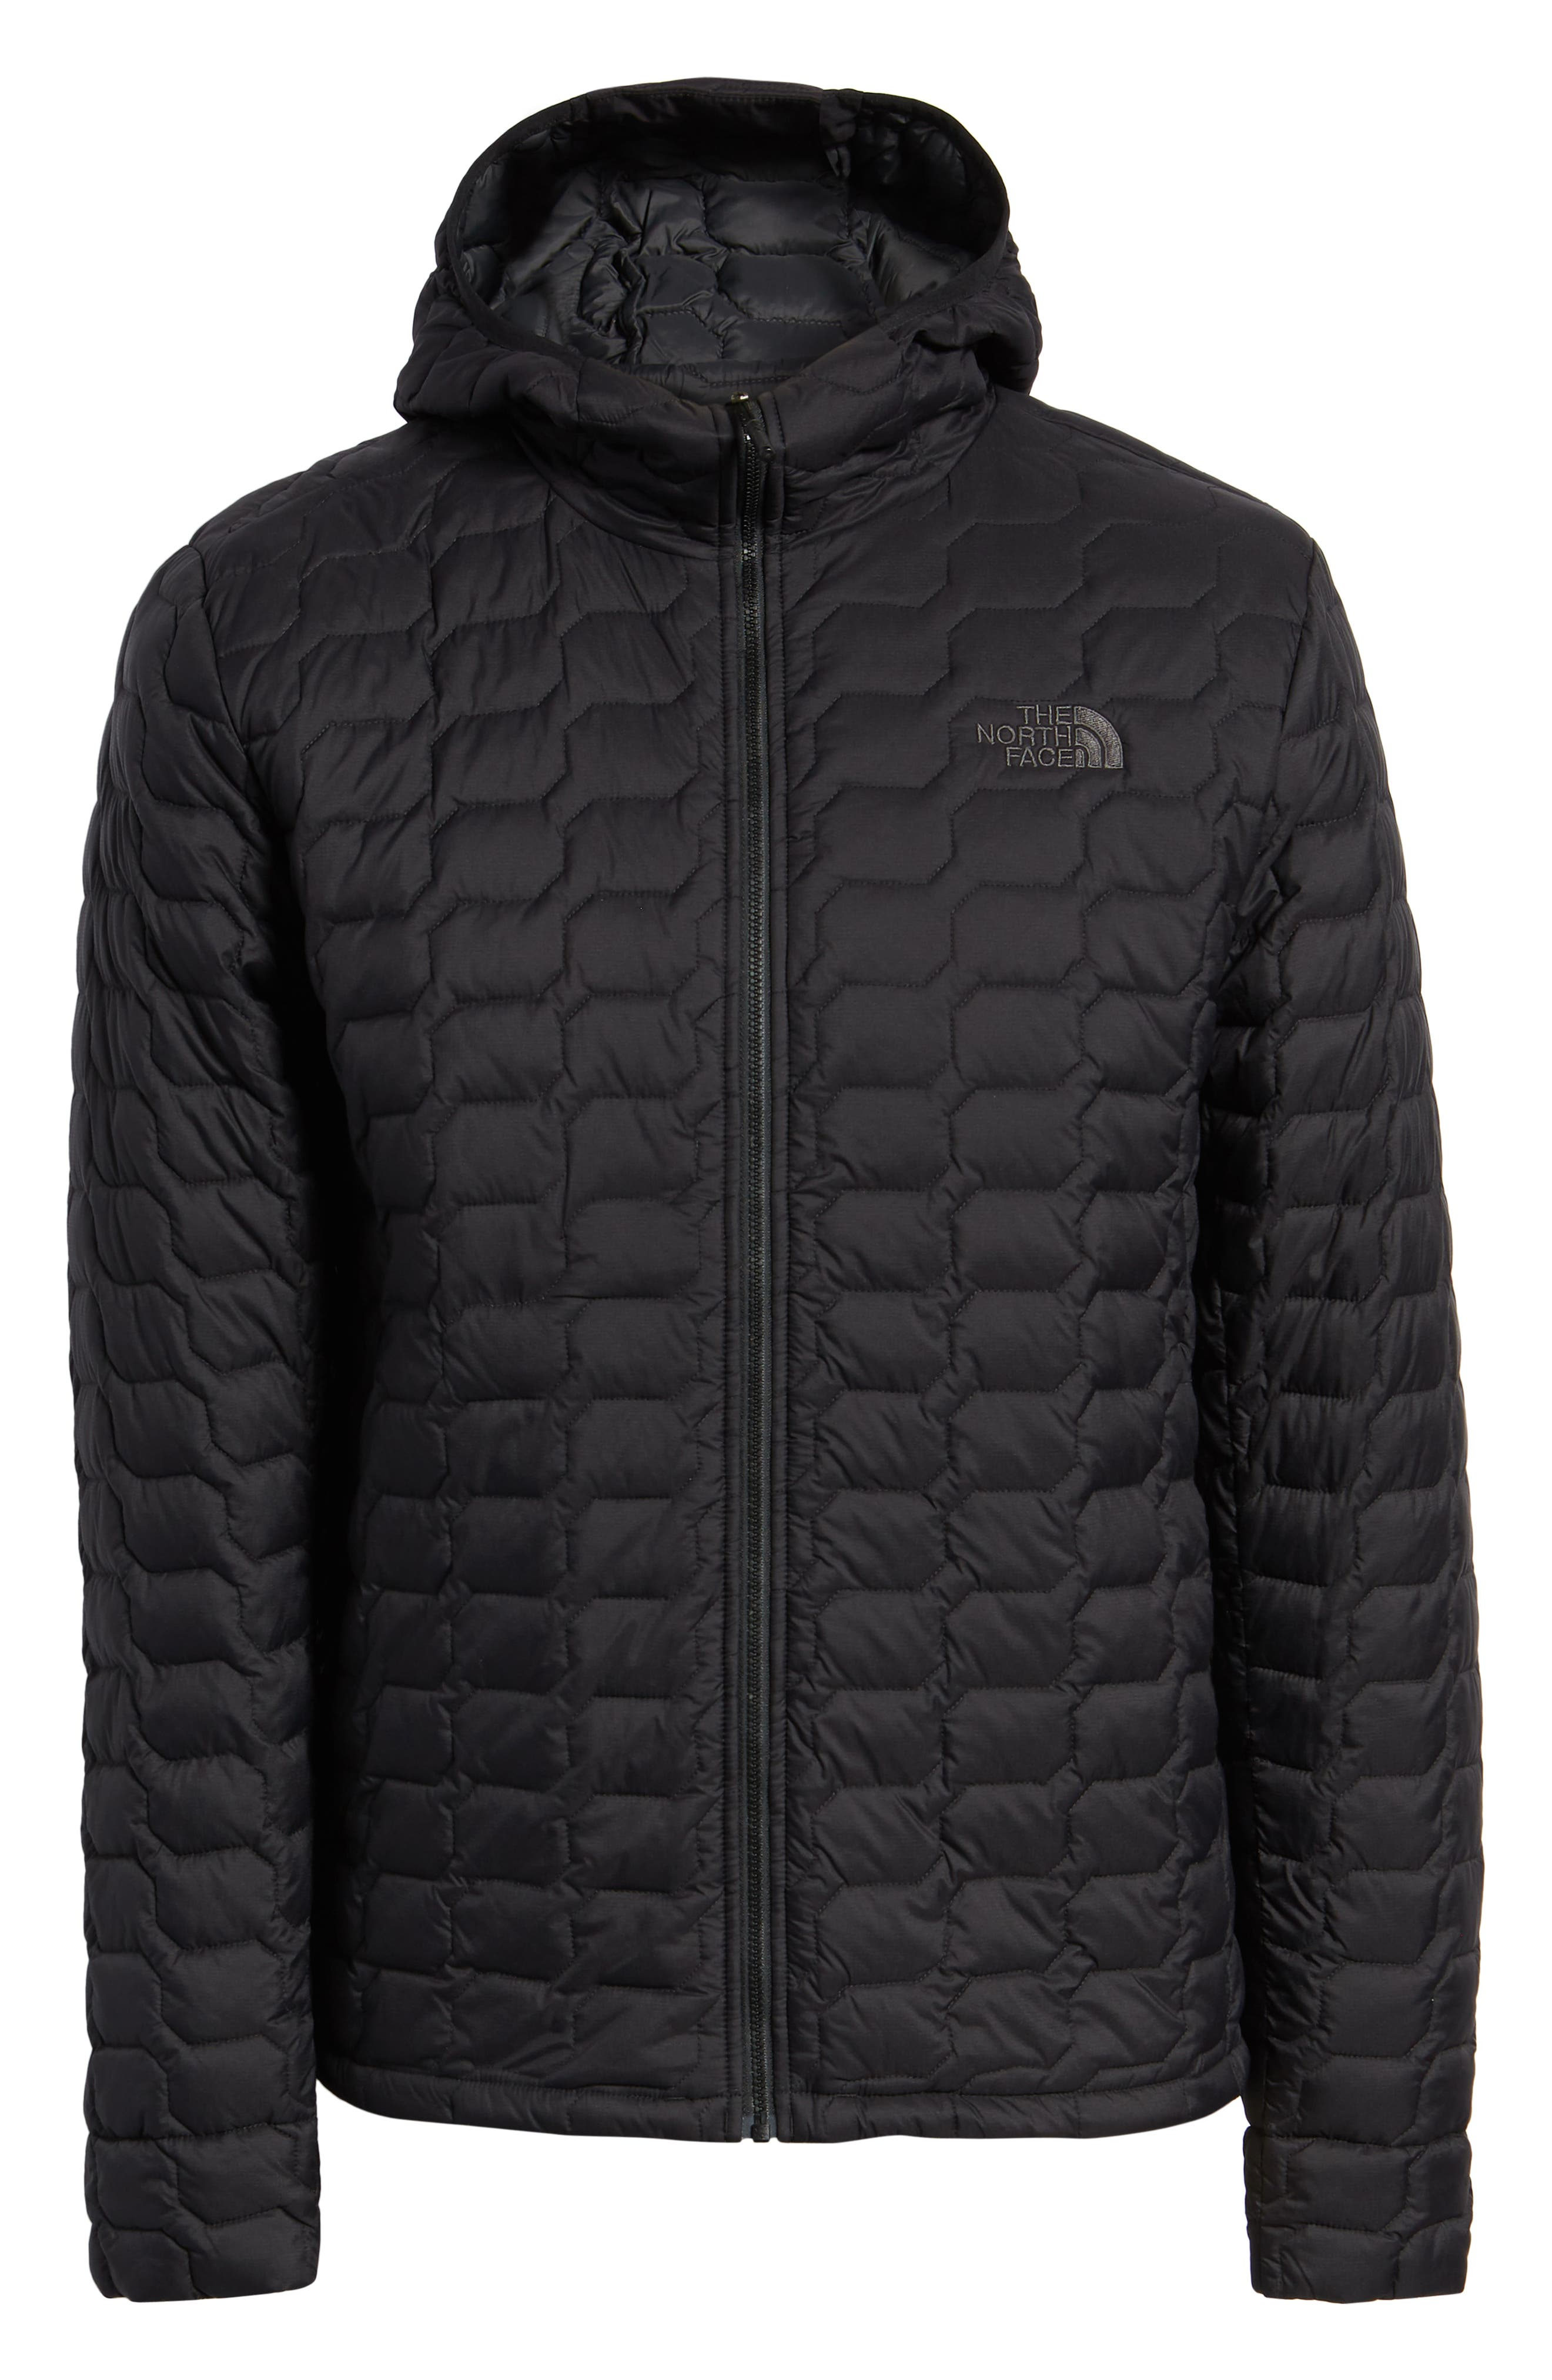 THE NORTH FACE, ThermoBall<sup>™</sup> Zip Hoodie, Alternate thumbnail 6, color, 001